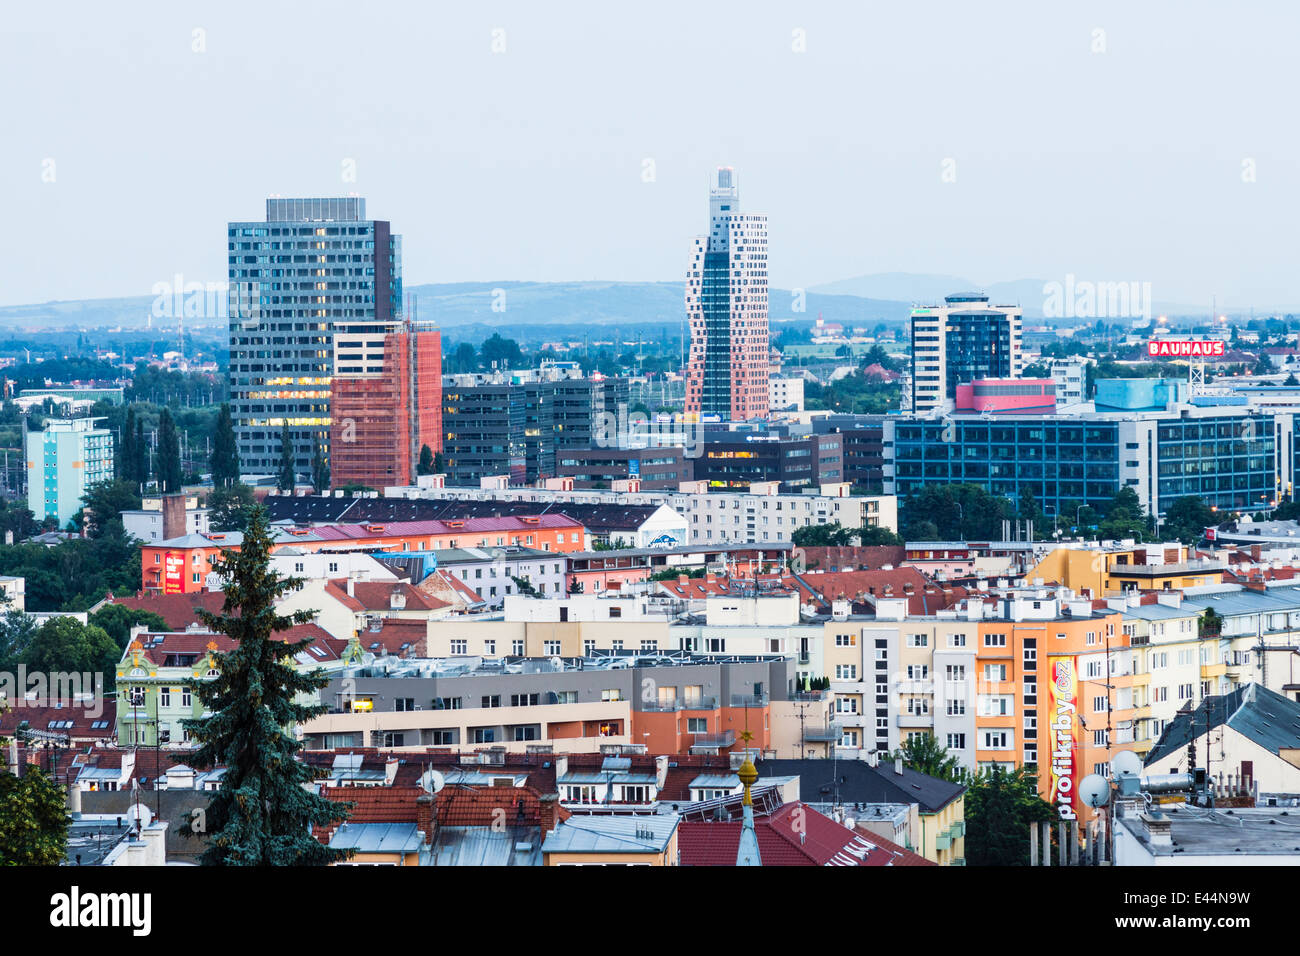 Brno overview showing the AZ Tower skyscraper, the tallest building in the Czech Republic at 111 m. Brno, Czech - Stock Image